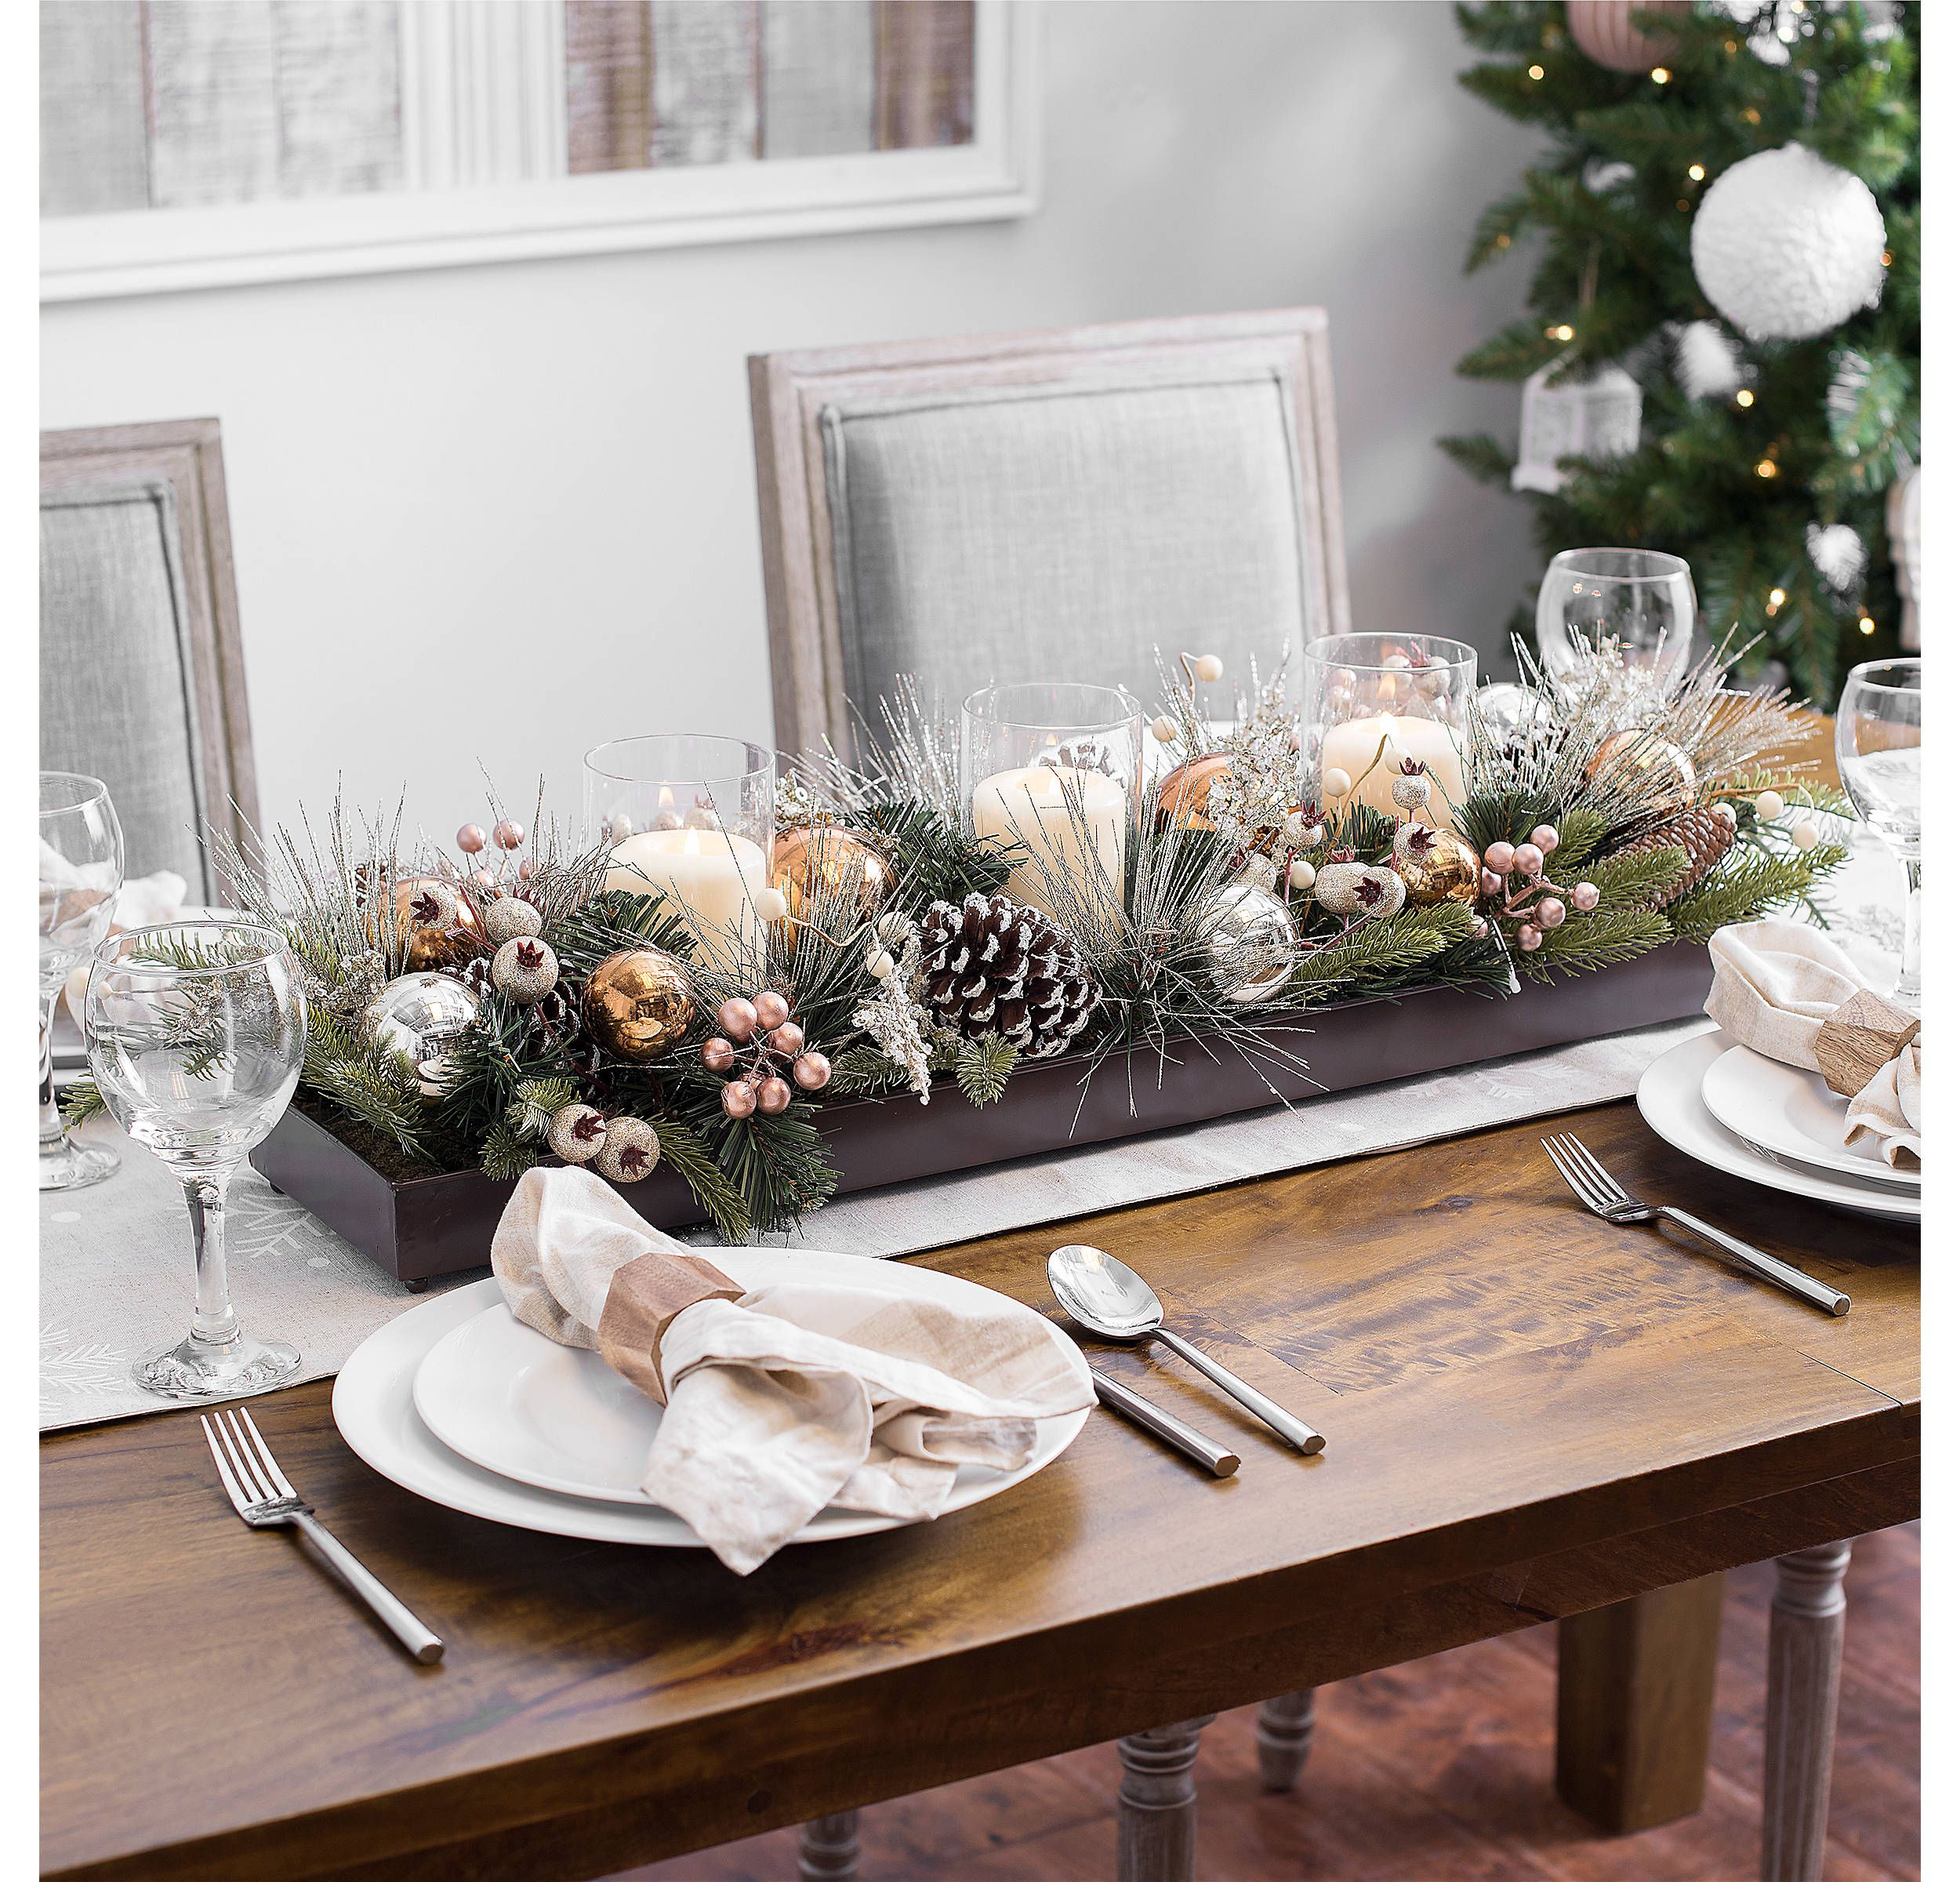 Metallic Berry And Ornament Candle Centerpiece Christmas Table